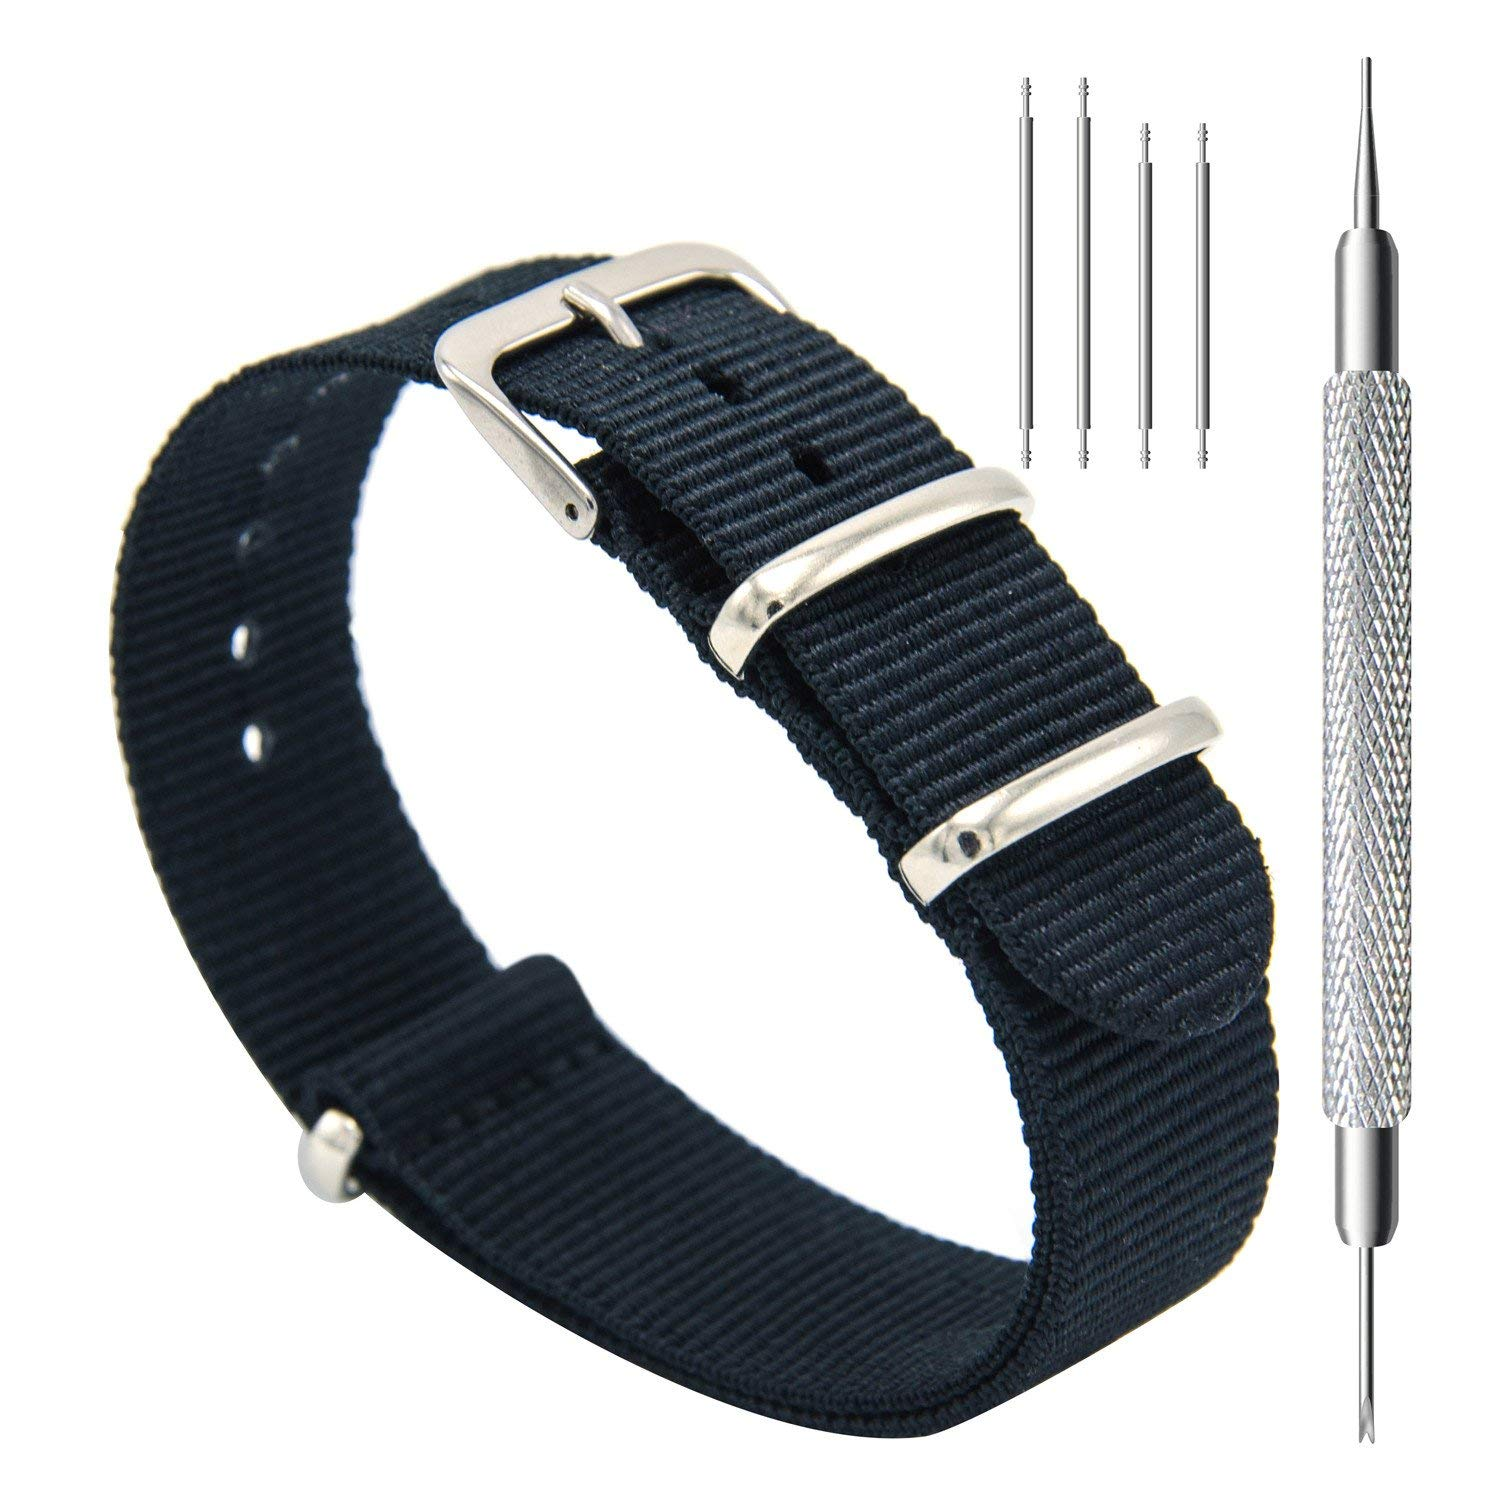 CIVO Watch Bands NATO Premium Ballistic Nylon Watch Strap Stainless Steel Buckle